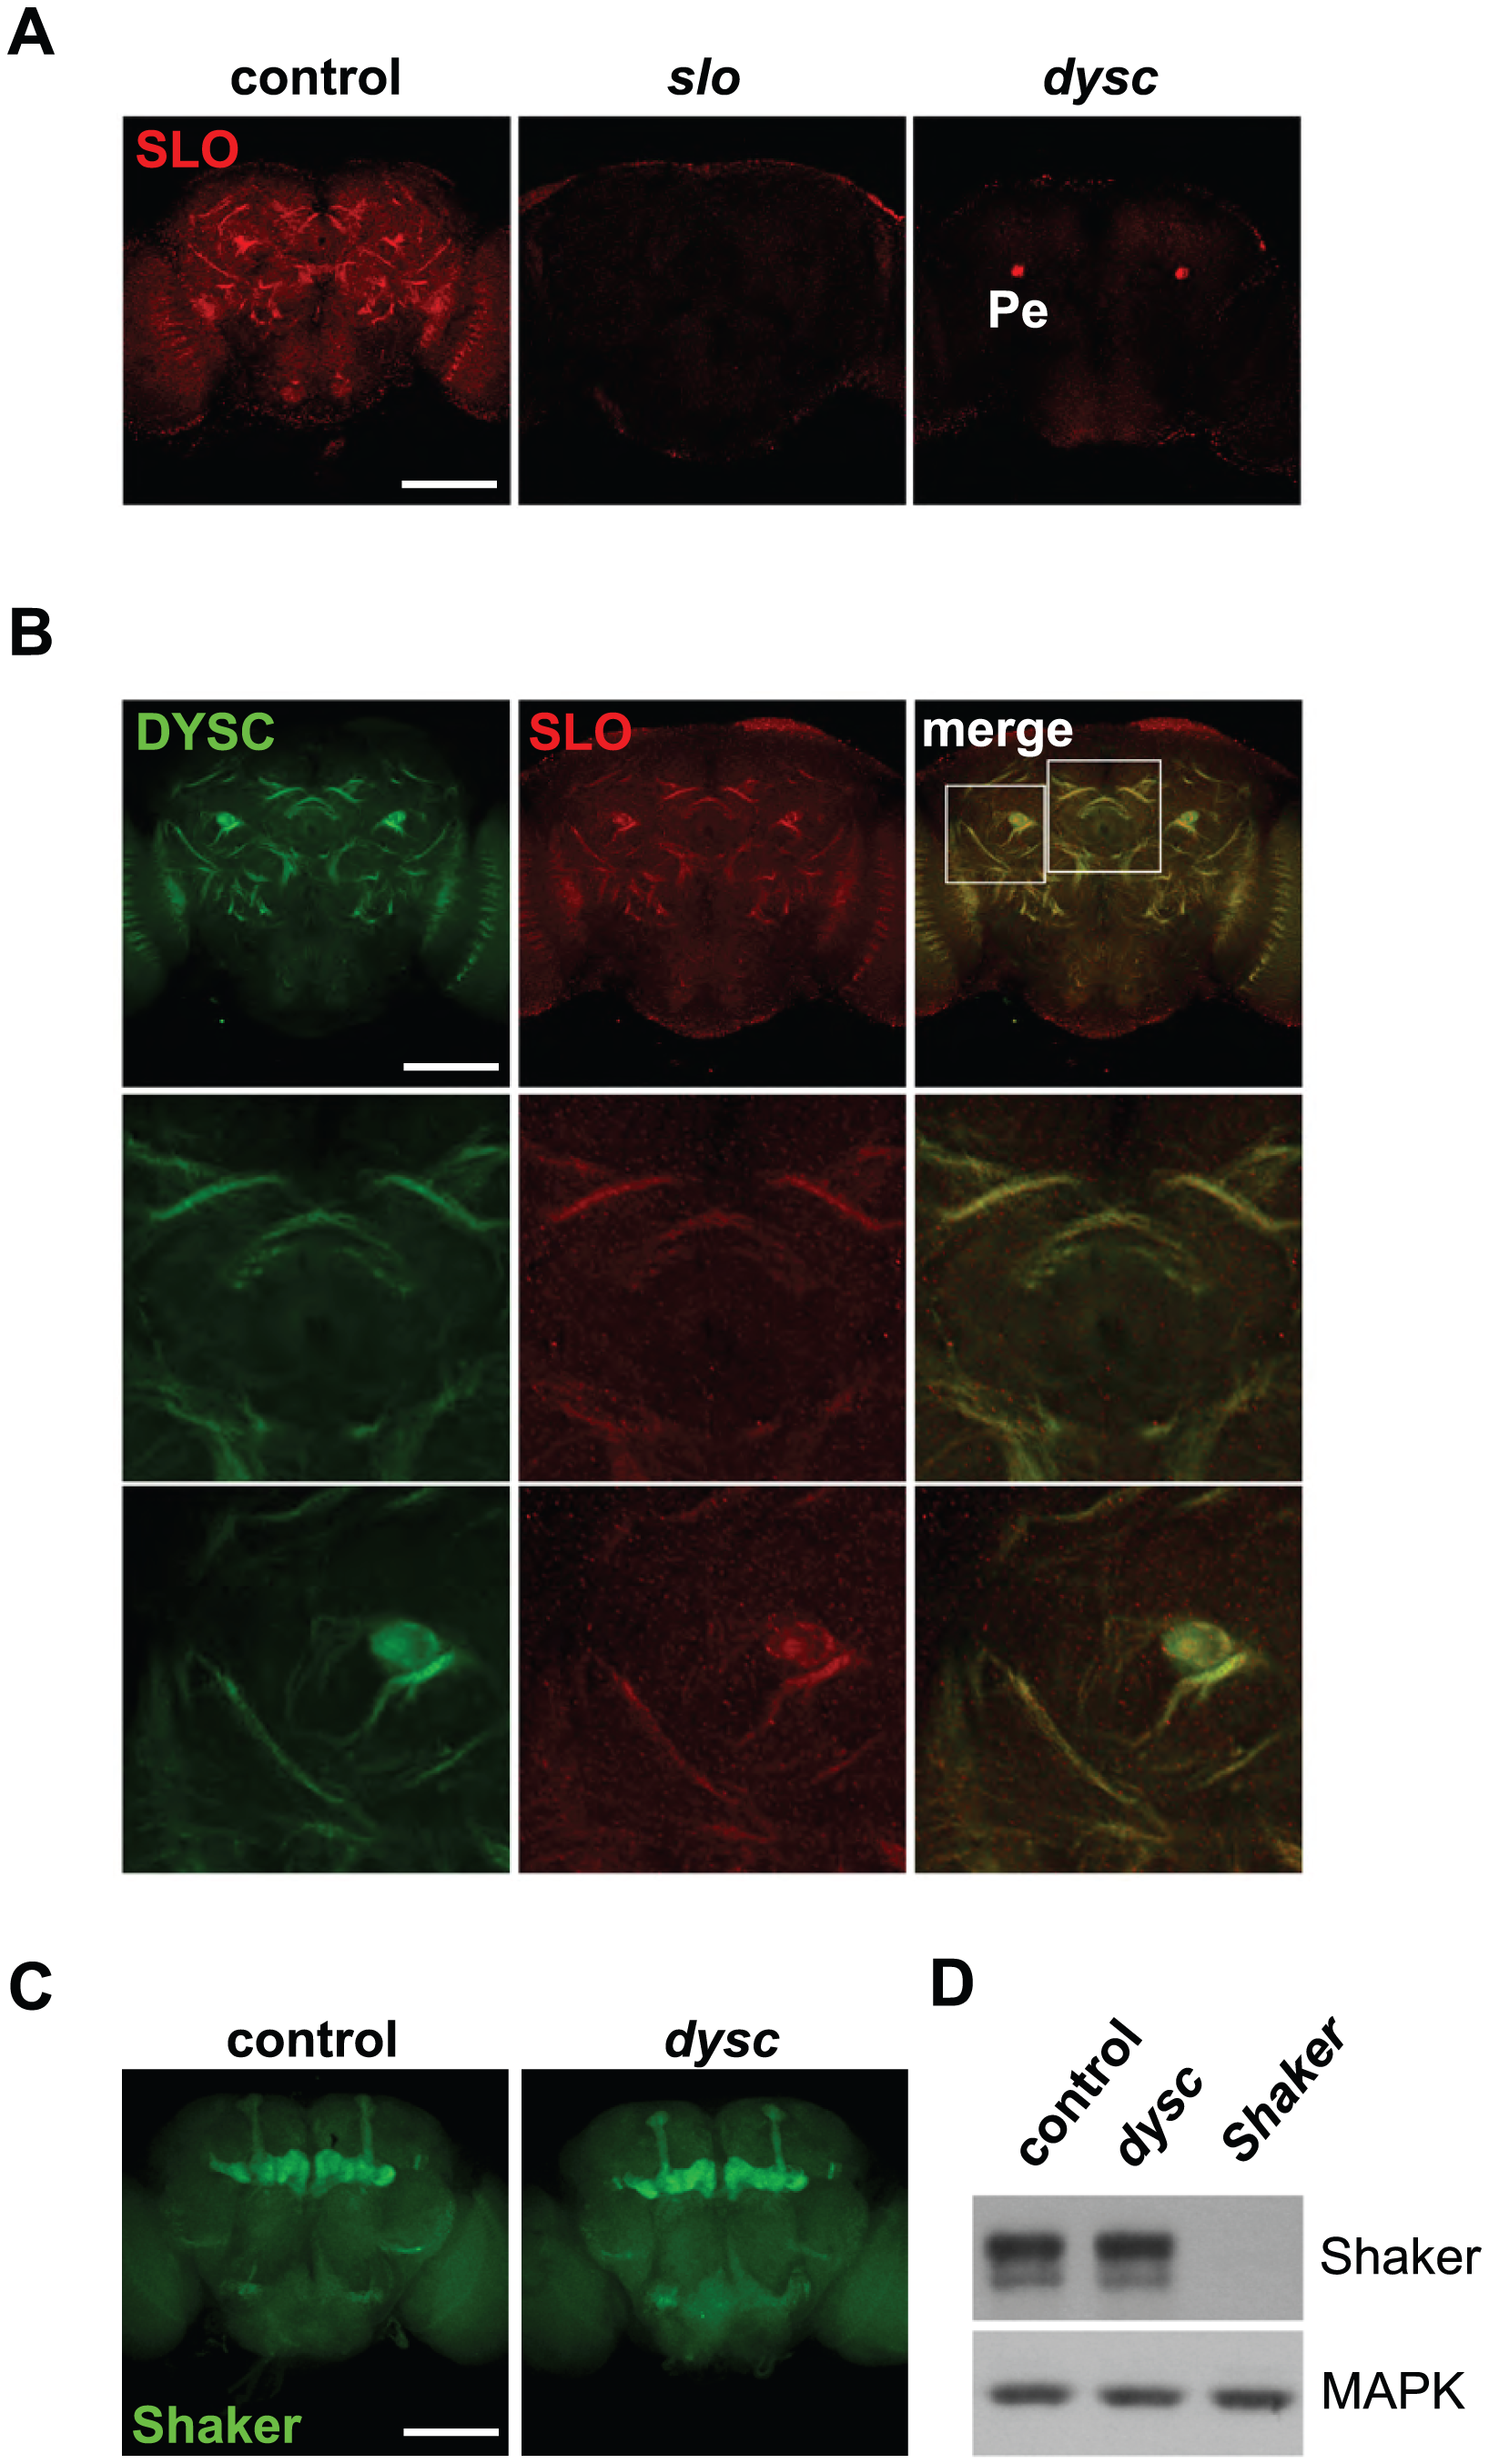 DYSC regulates expression of SLO.